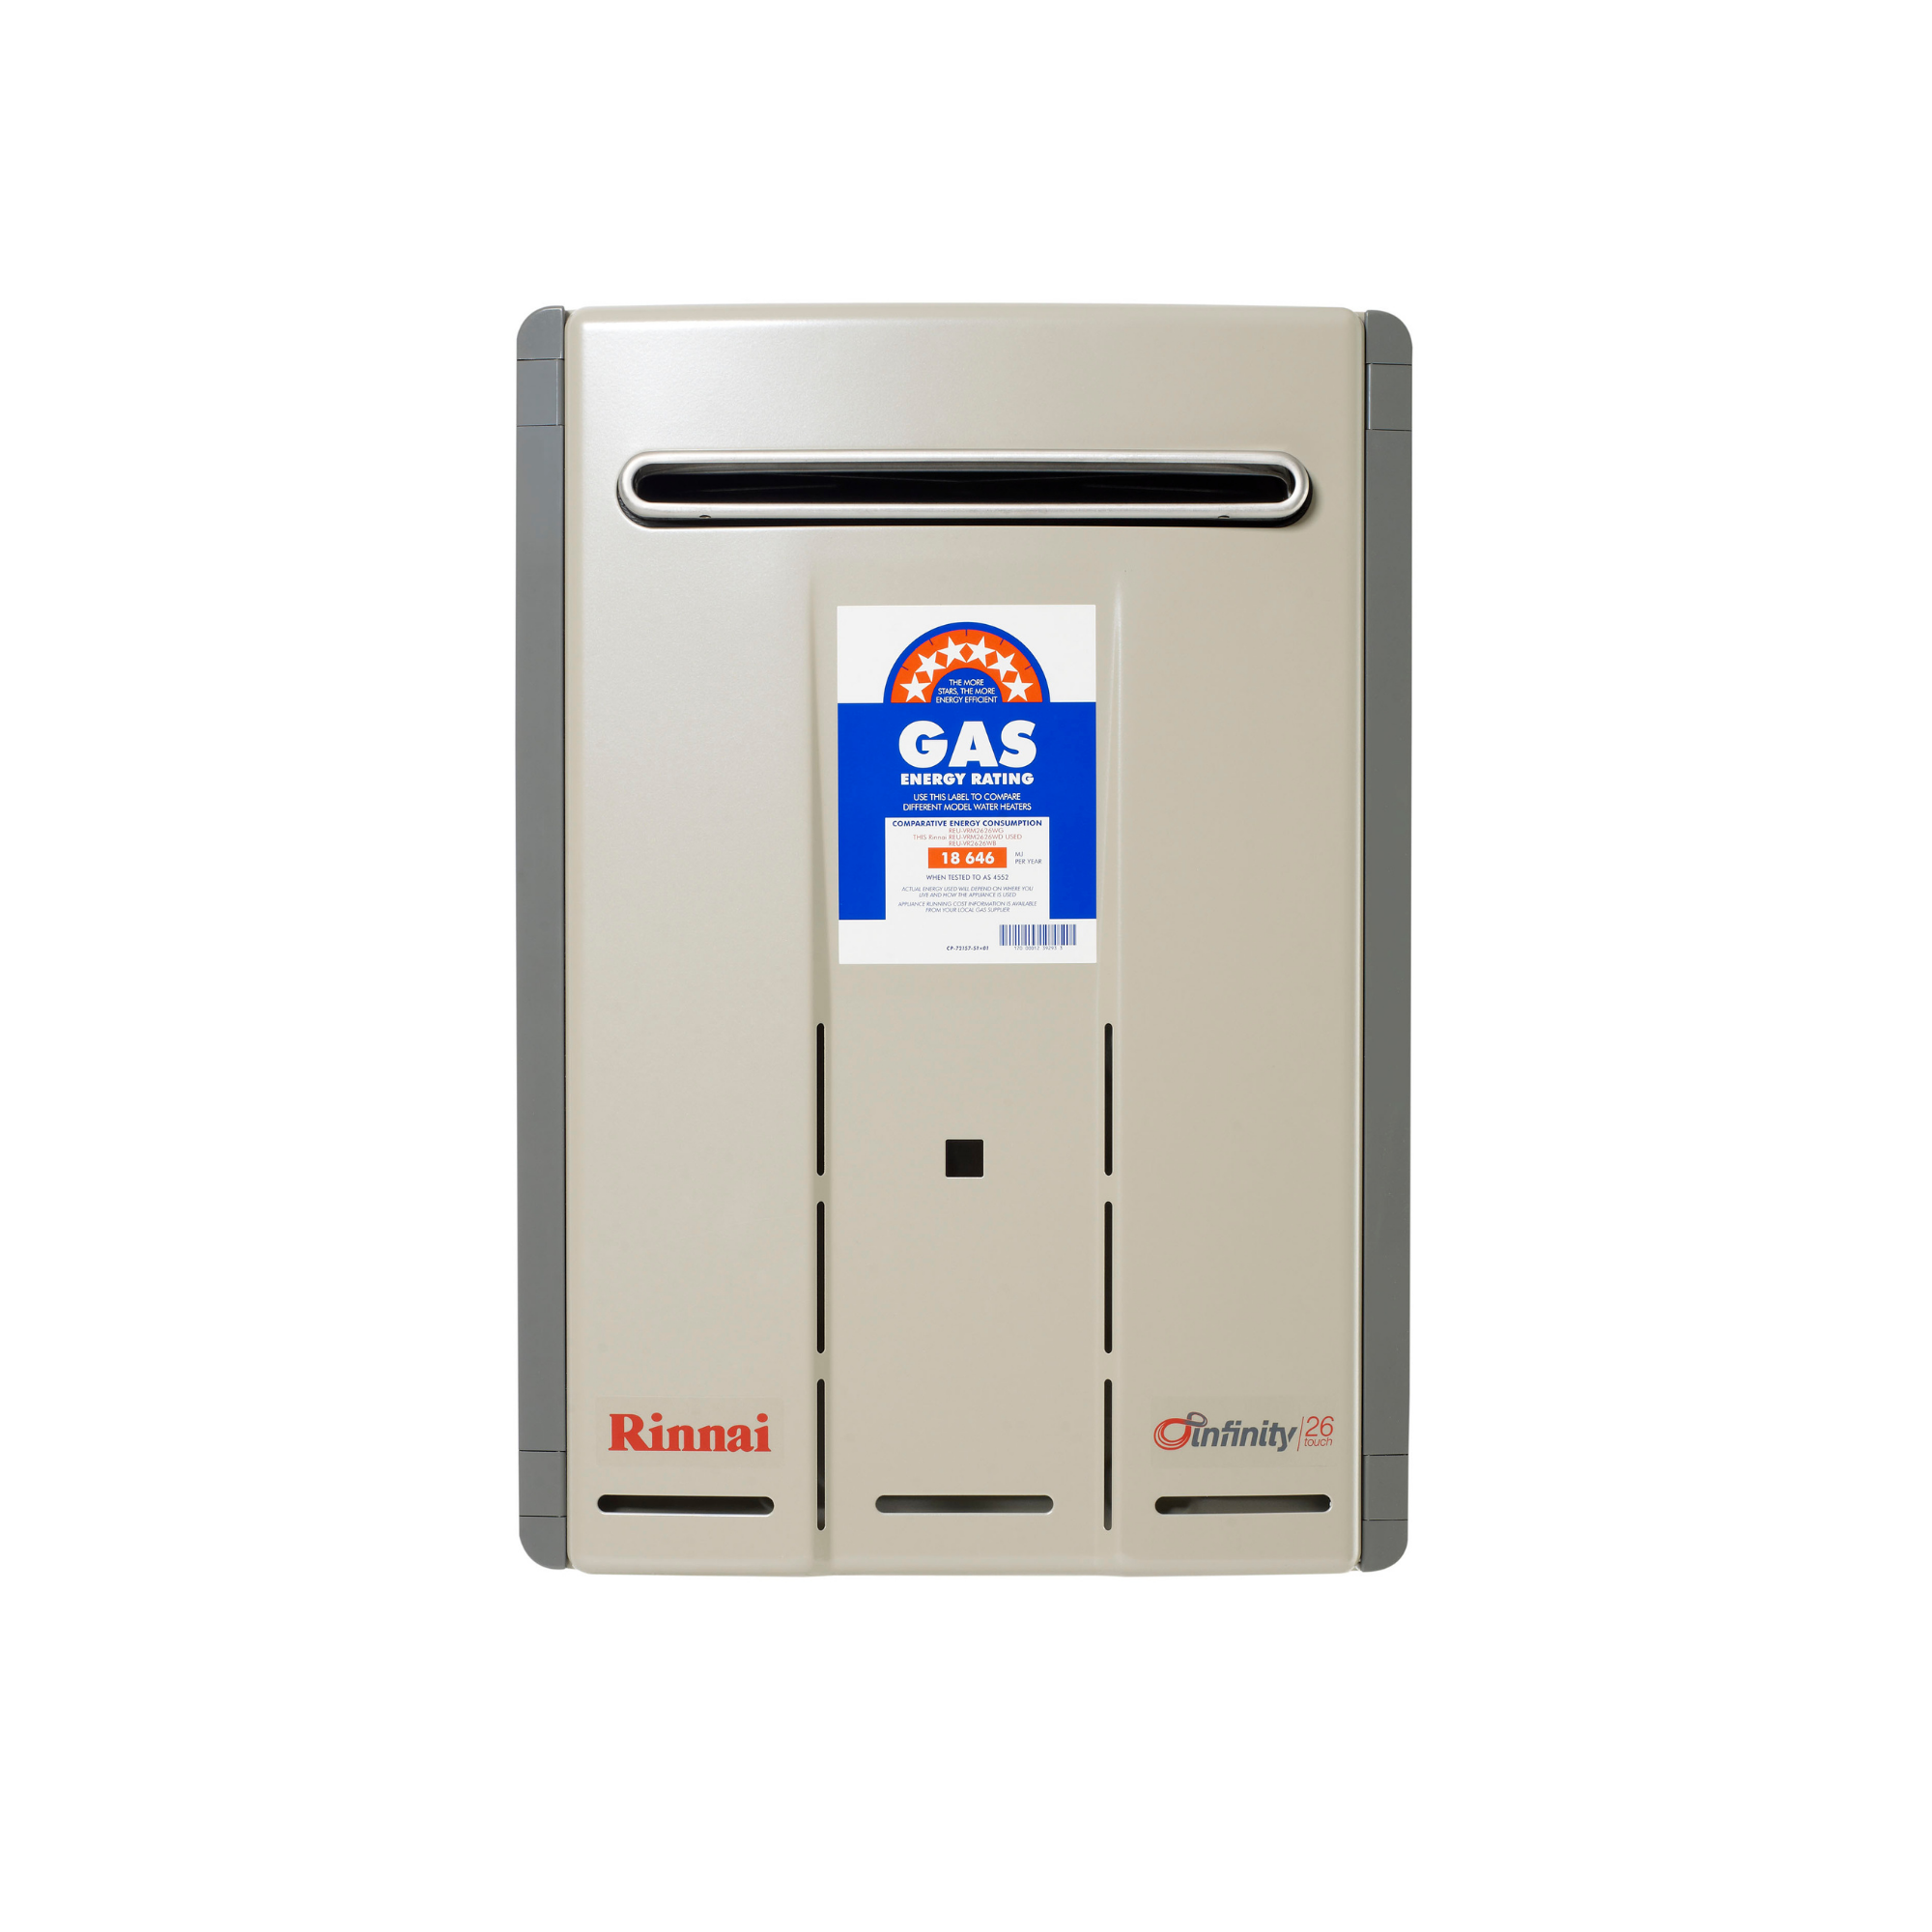 RINNAI 26 TOUCH GAS CONTINUOUS FLOW HOT WATER SYSTEM